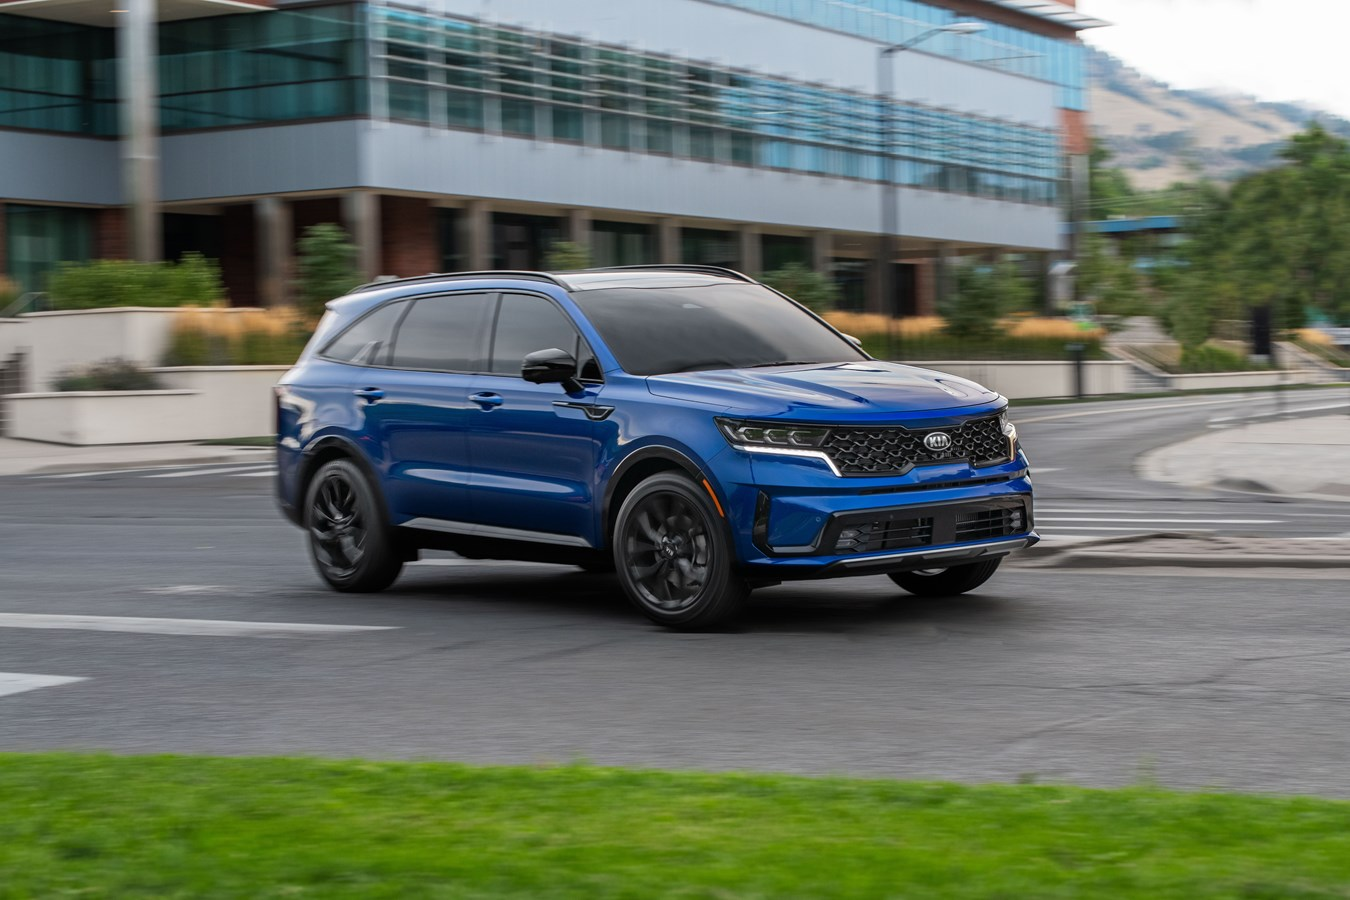 2021-kia-sorento-reviewed,-porsche-911-gt3-set-to-launch,-ioniq-price-hiked:-what's-new-@-the-car-connection